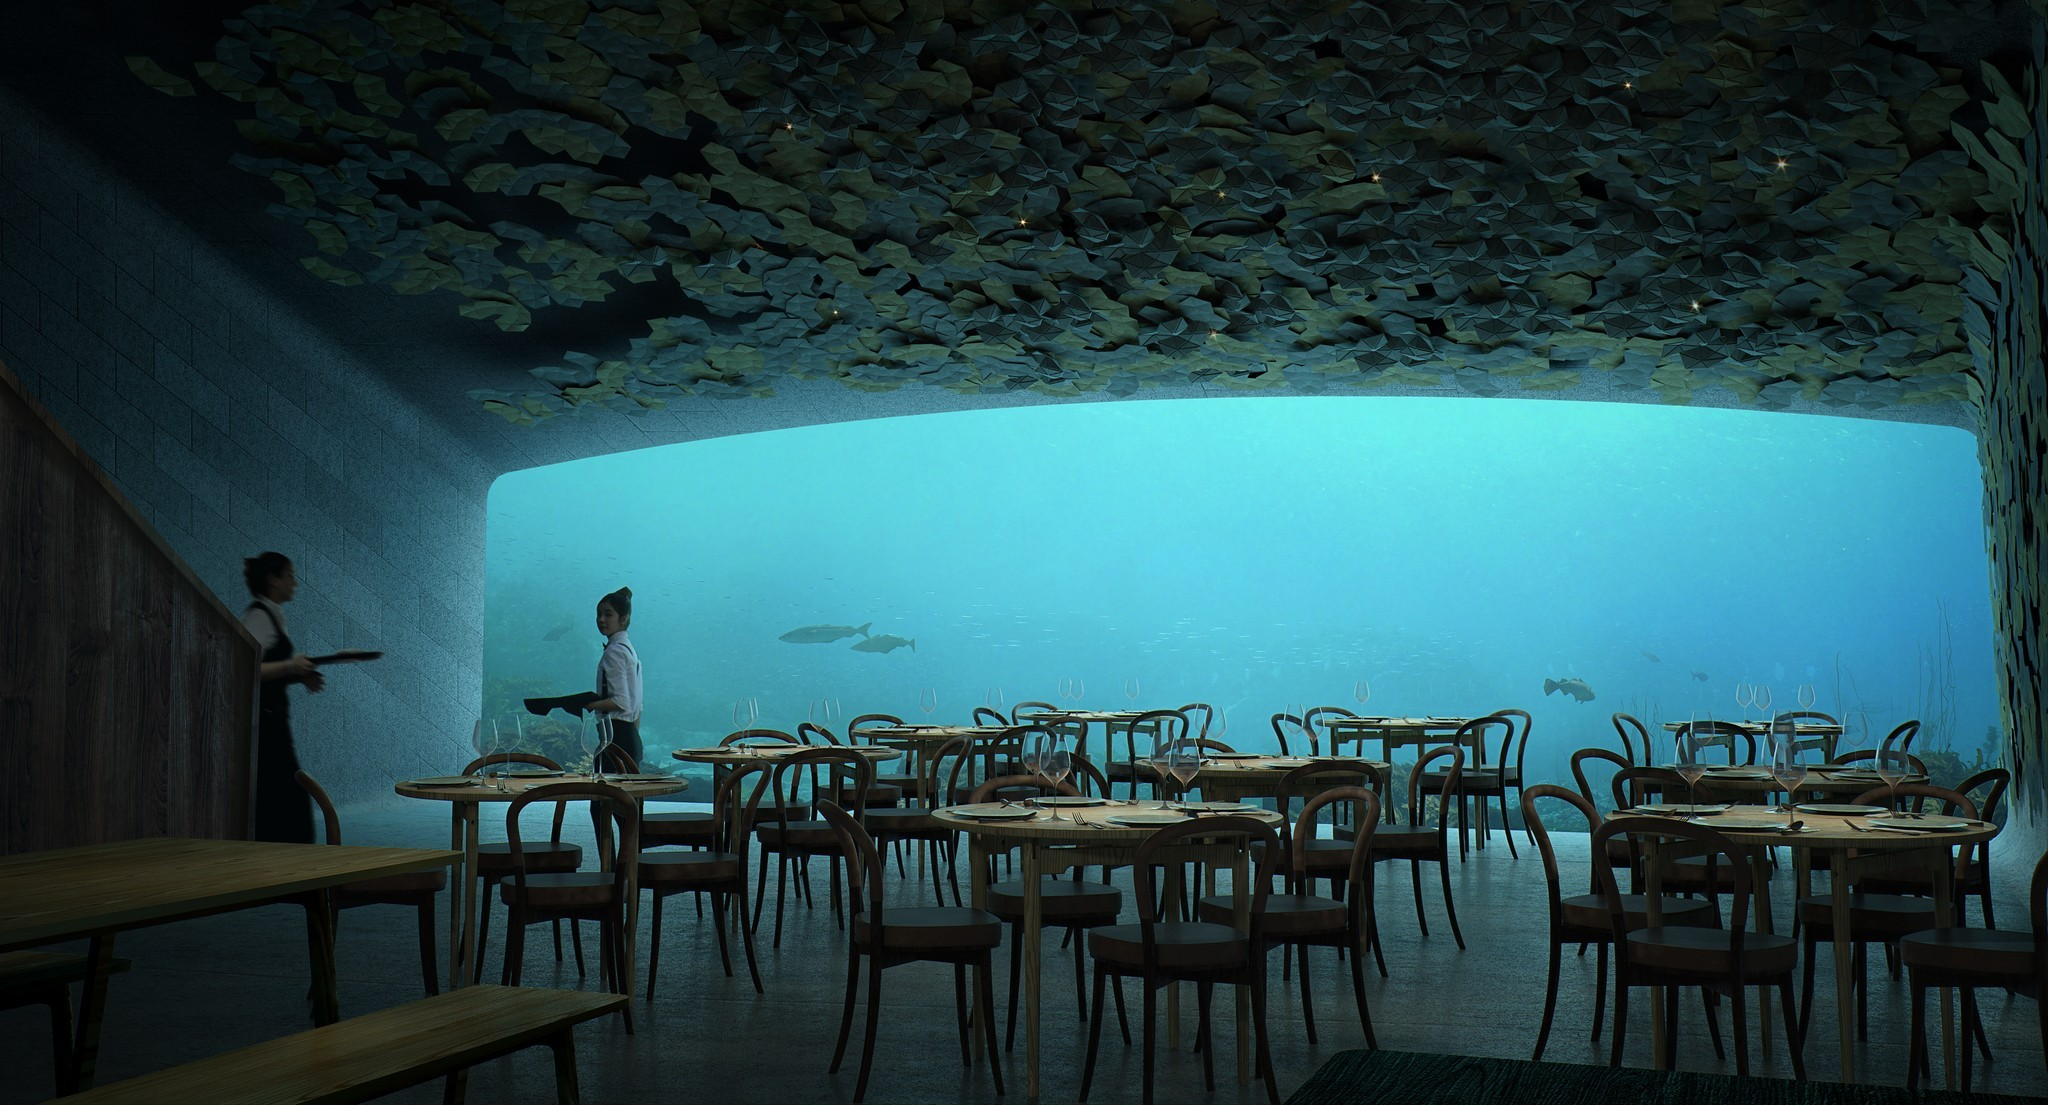 Europes First Underwater Restaurant Is Absolutely Breathtaking 32f5cf04f78cf24b6c437a1a7d813f54 2048w